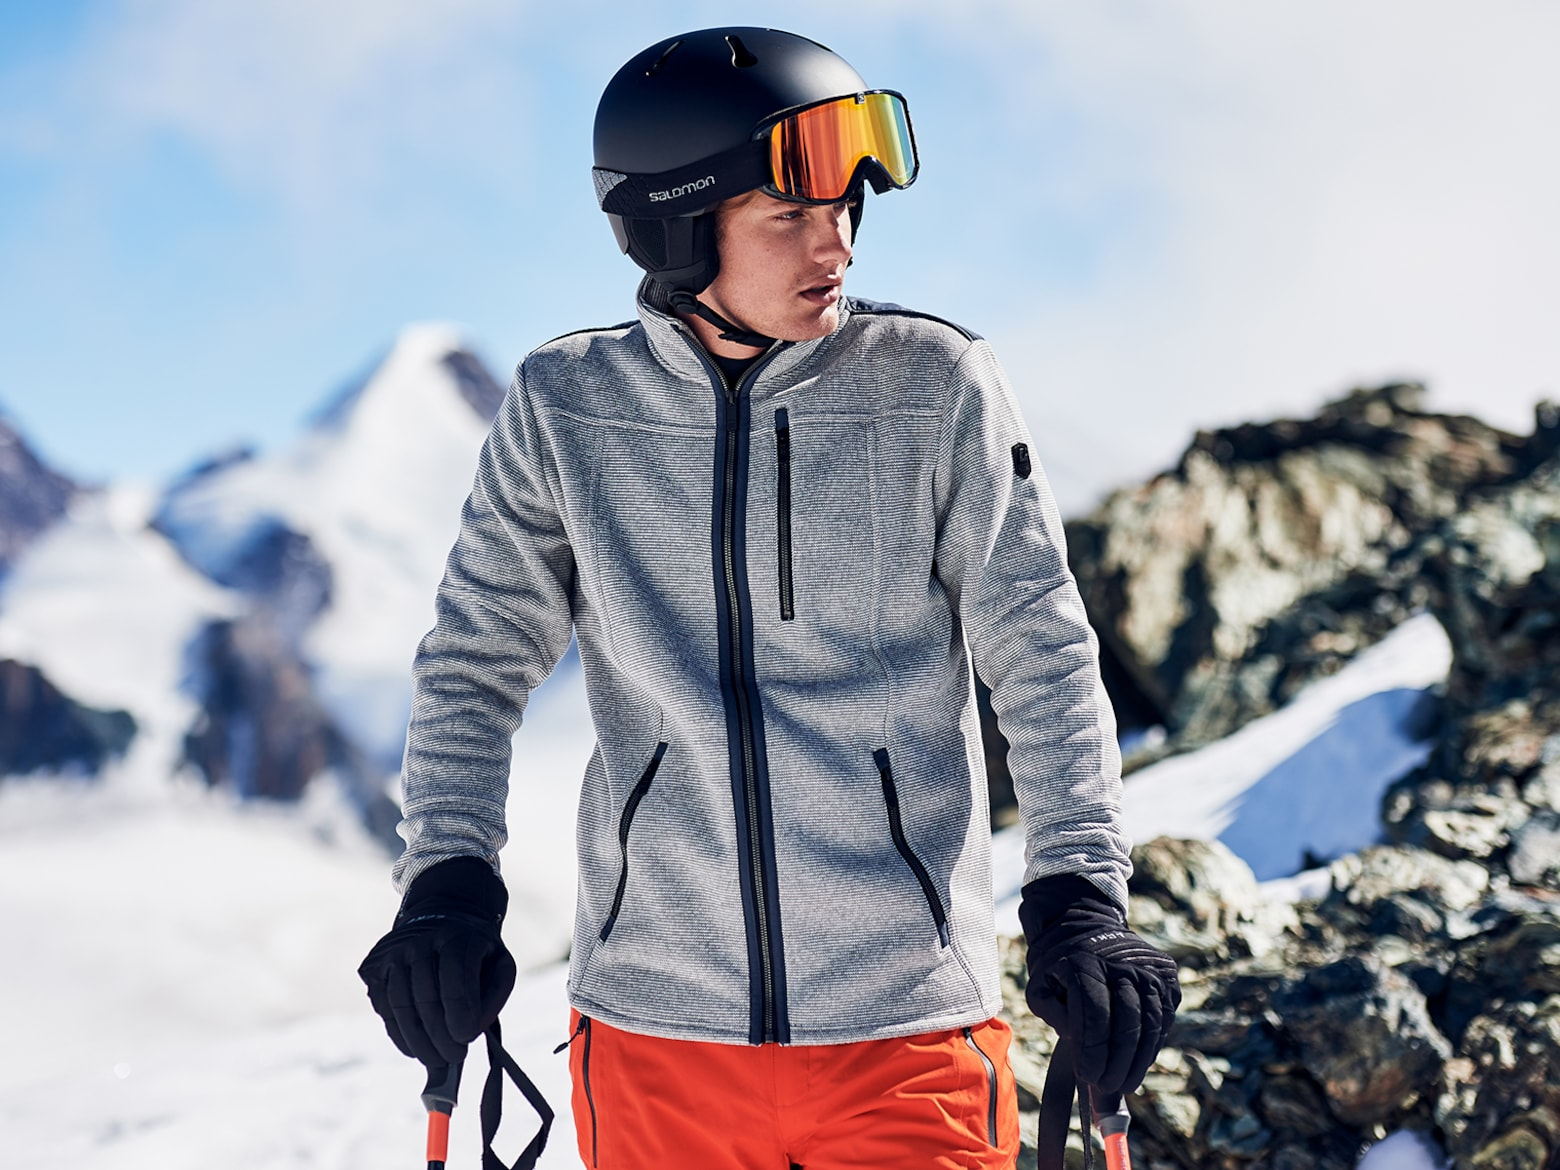 Luca - Grey and Orange Ski Look